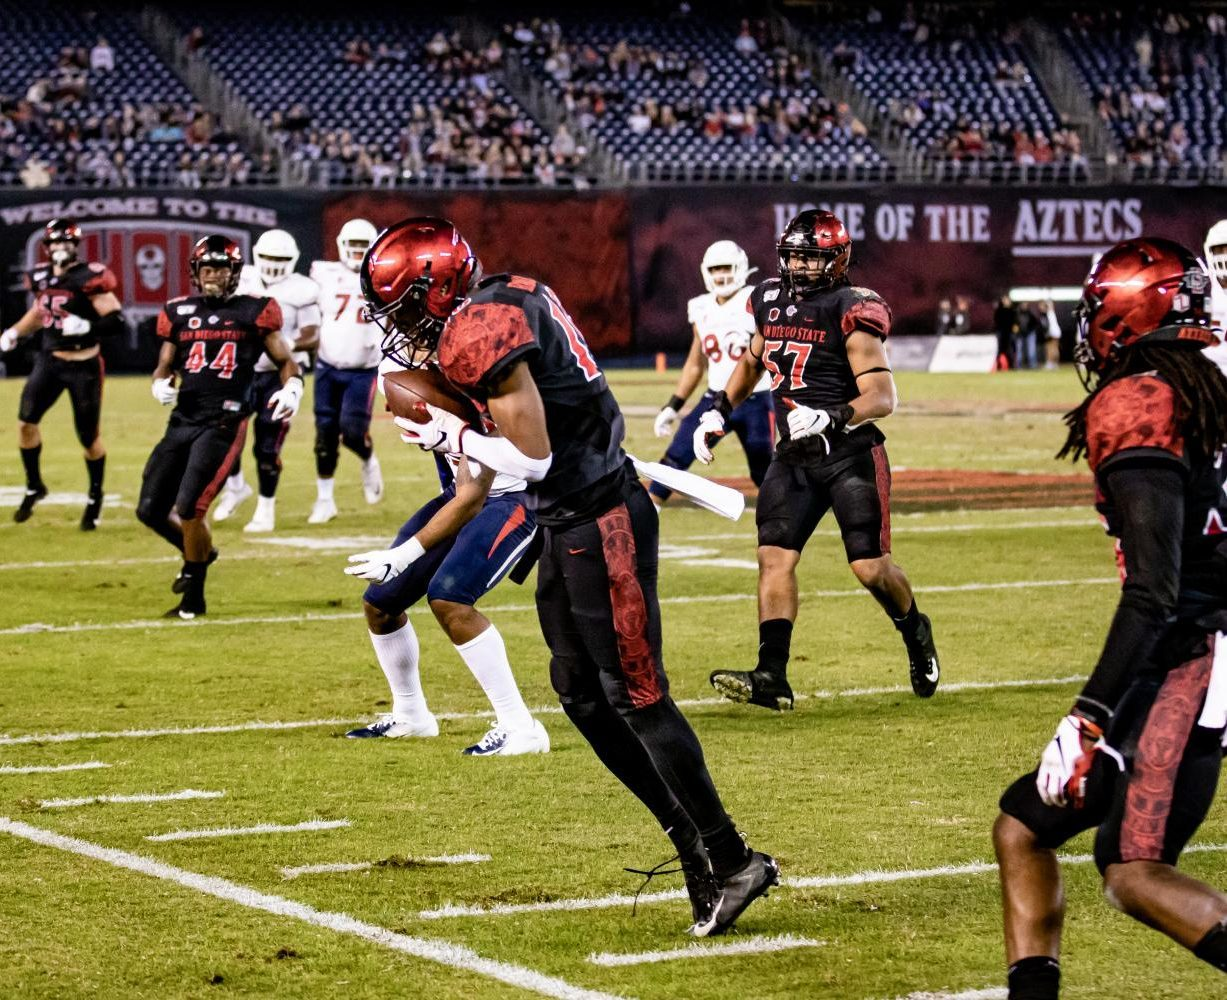 Senior cornerback Luq Barcoo intercepts a pass during the Aztecs' 17-7 win over Fresno State on Nov. 15 at SDCCU Stadium.